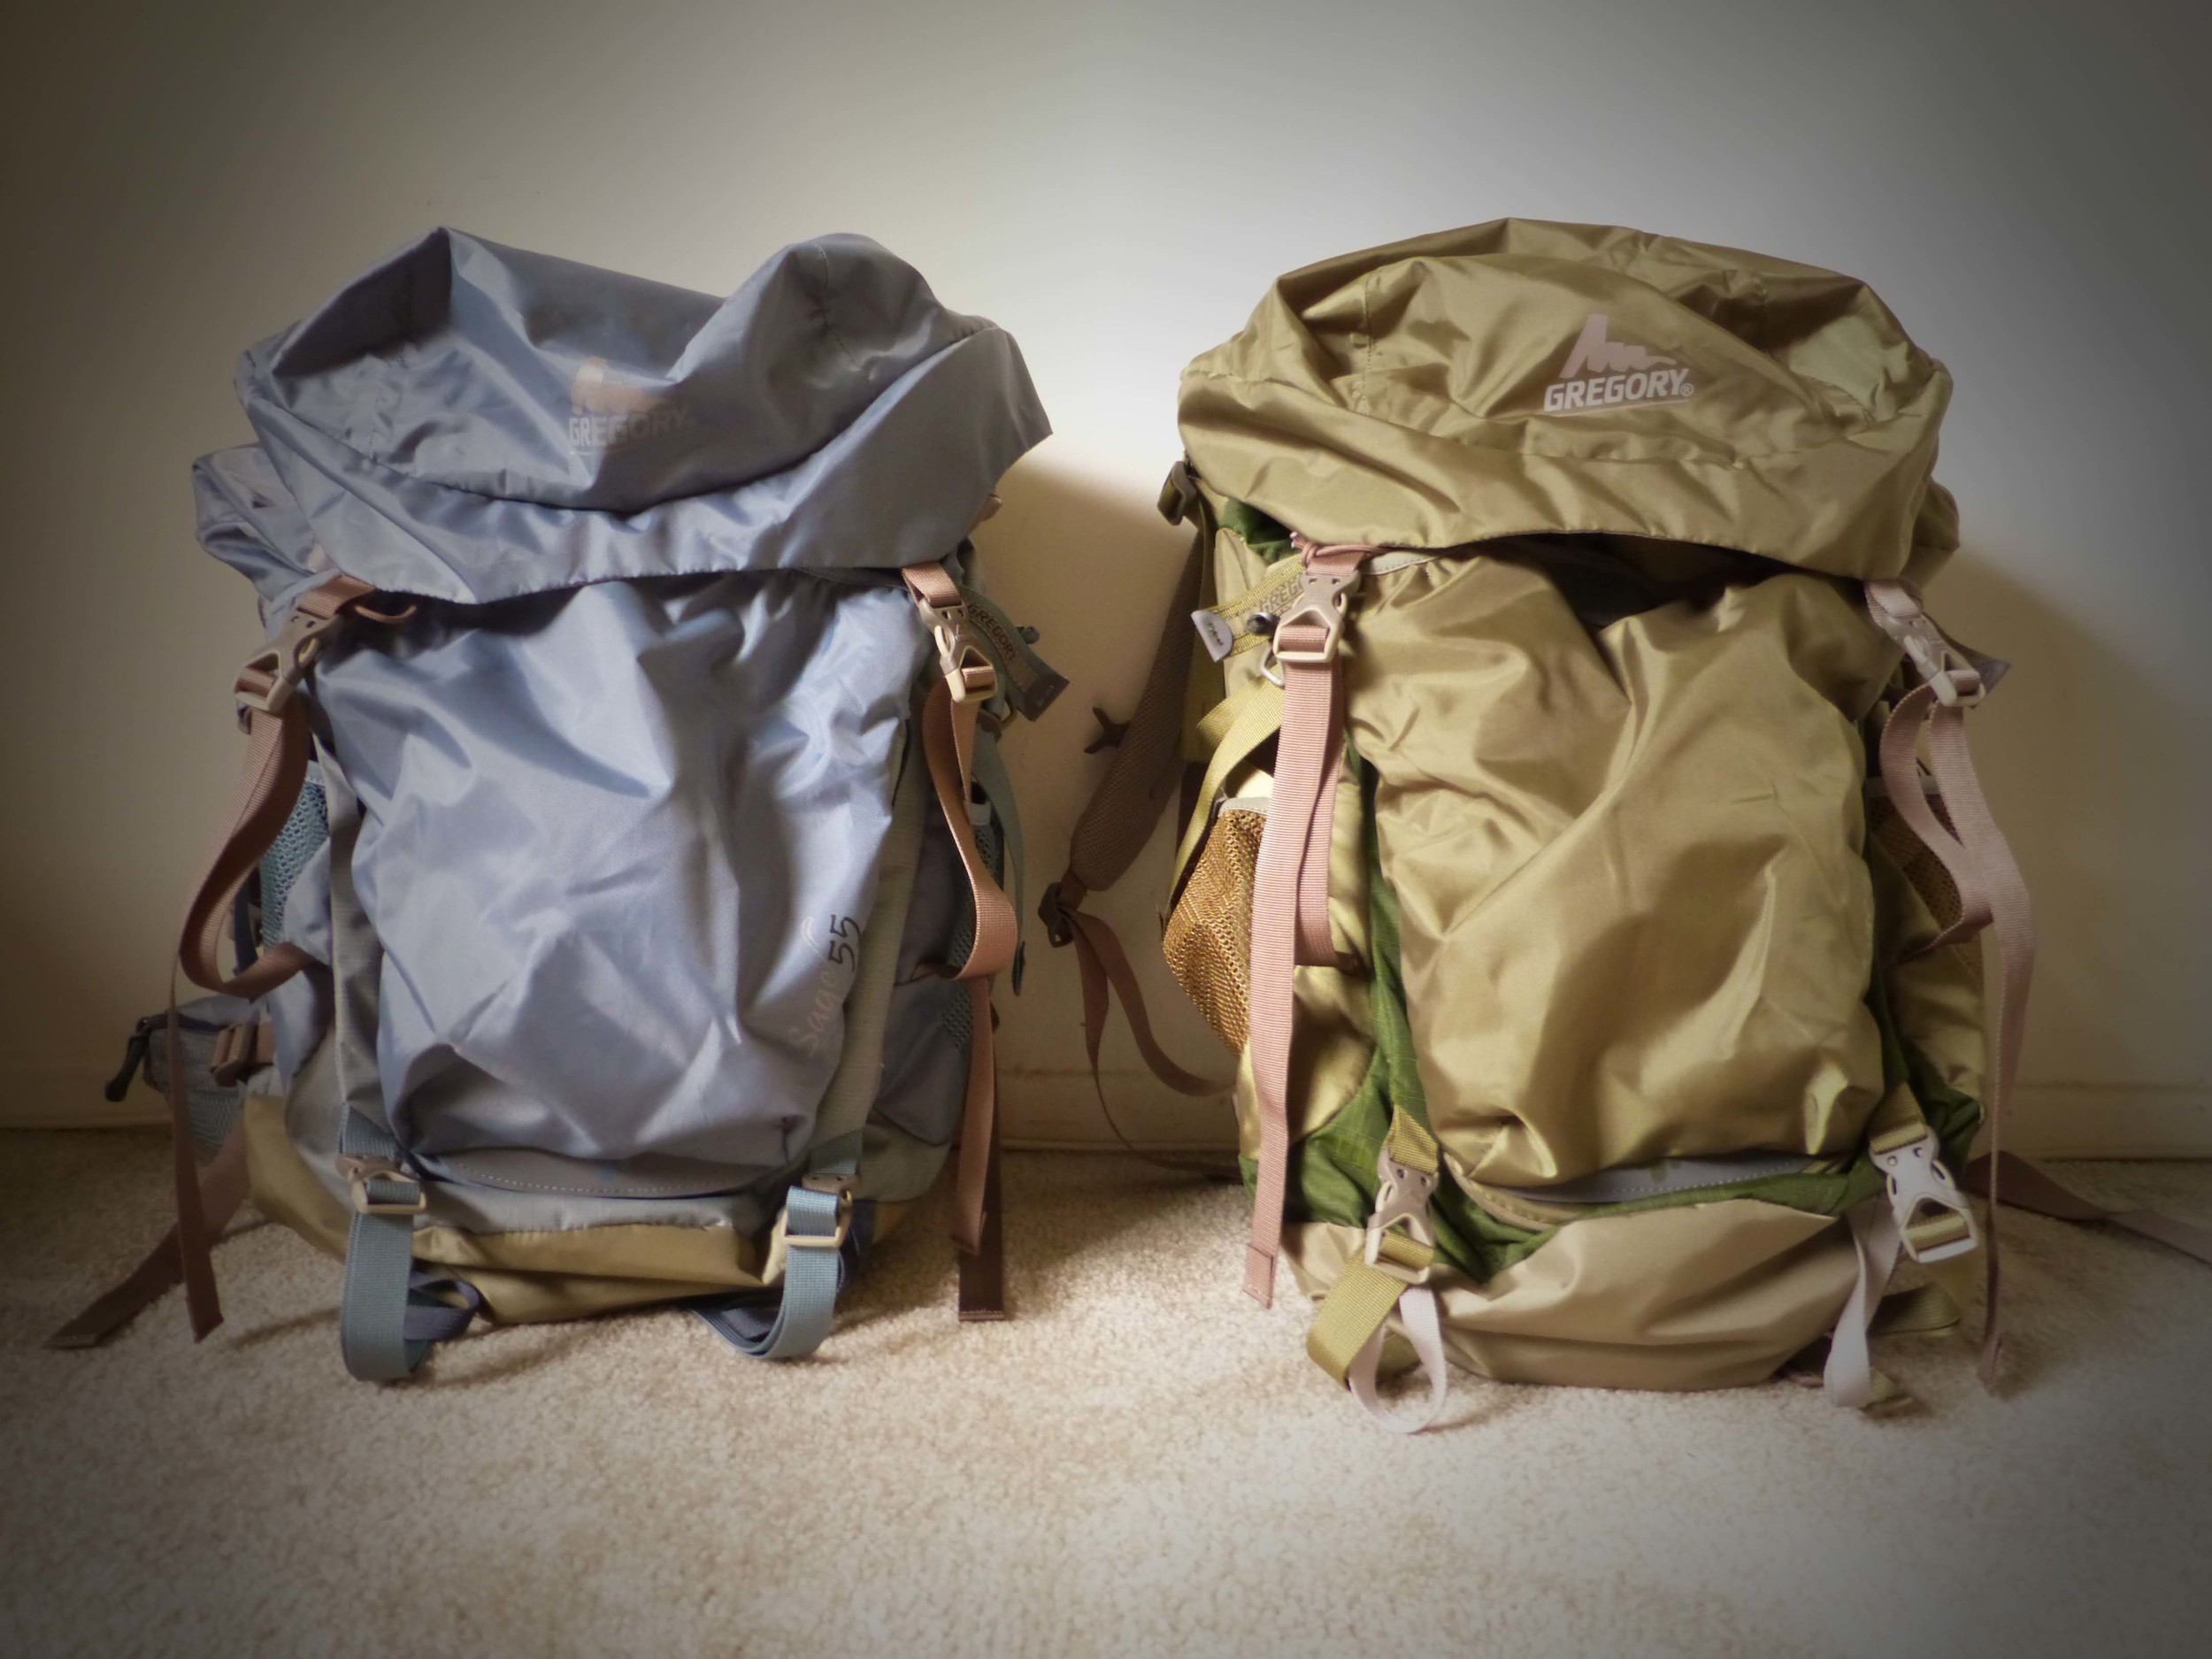 Backpacks for two.